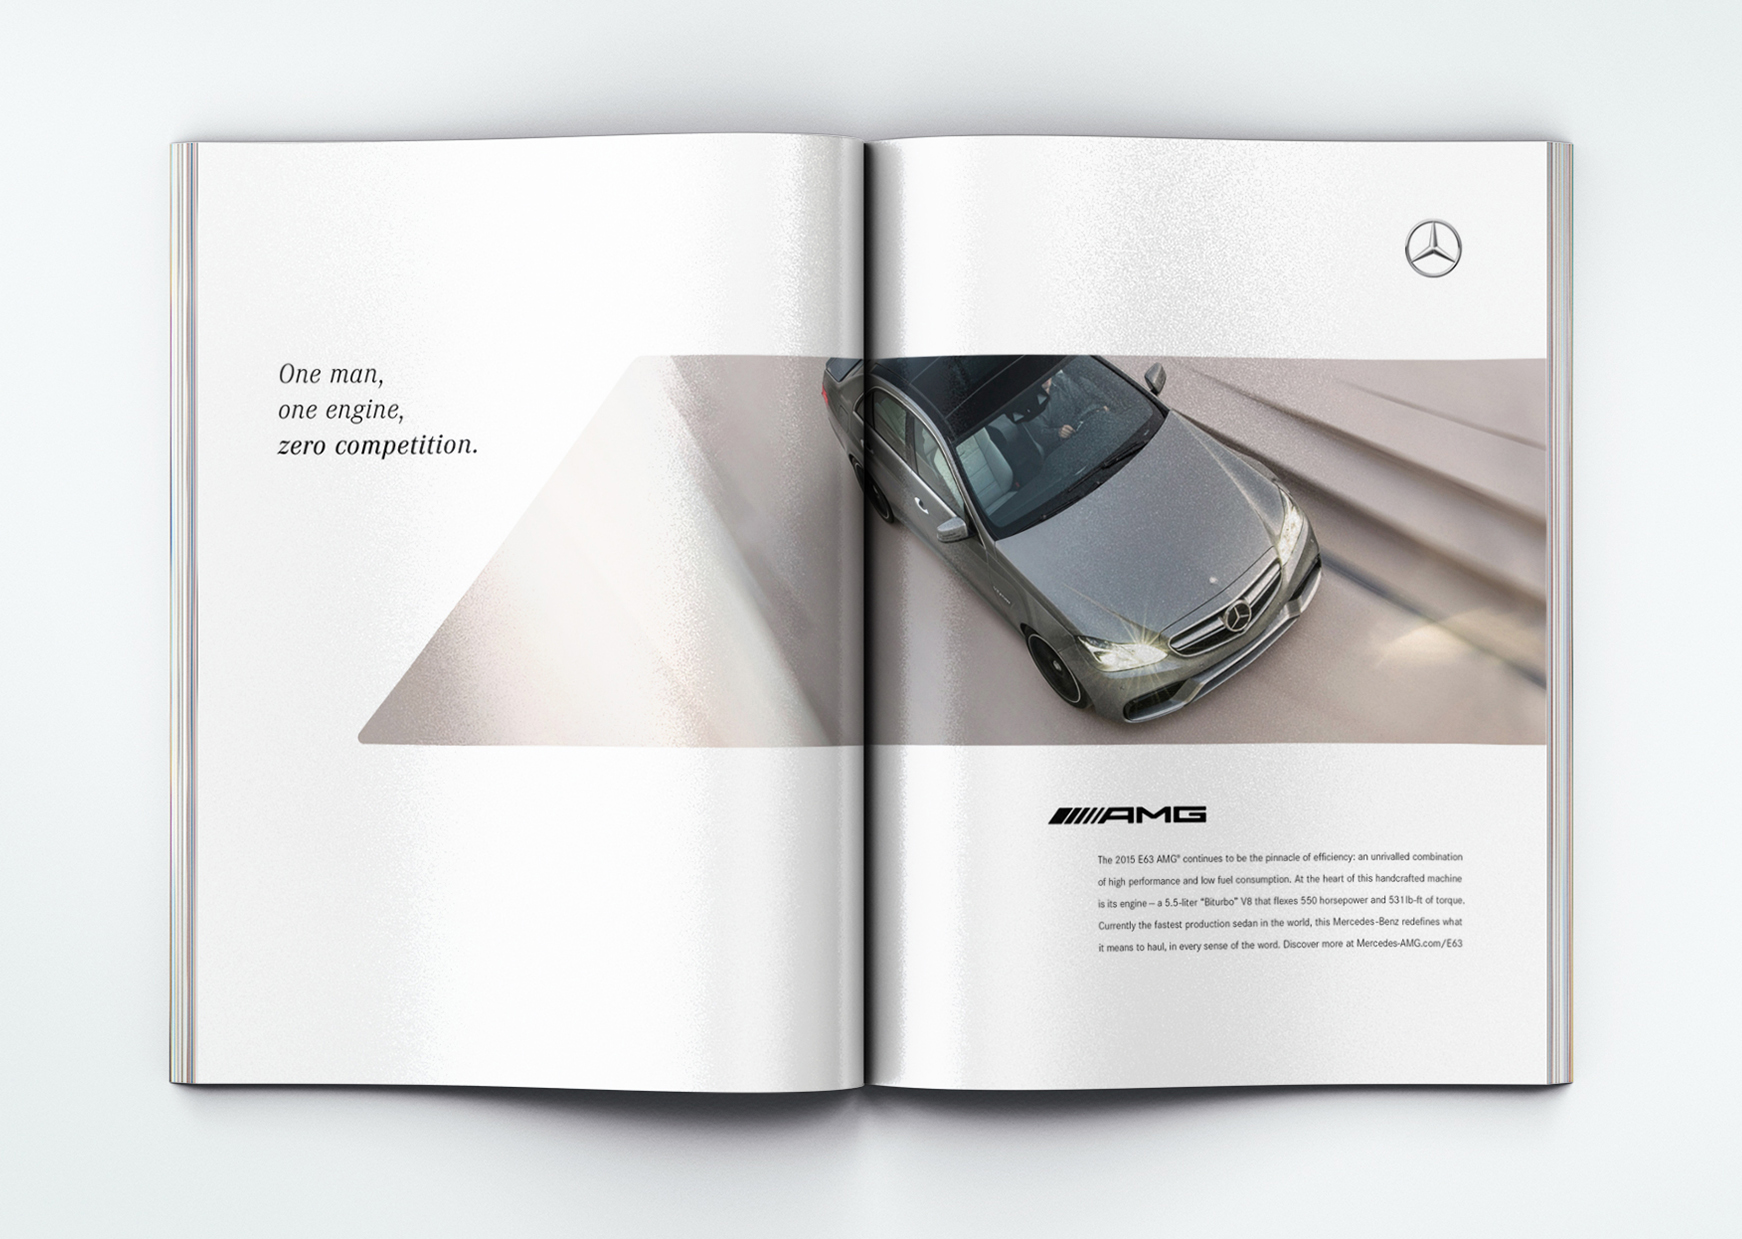 mercedes_layouts_3 copy.jpg